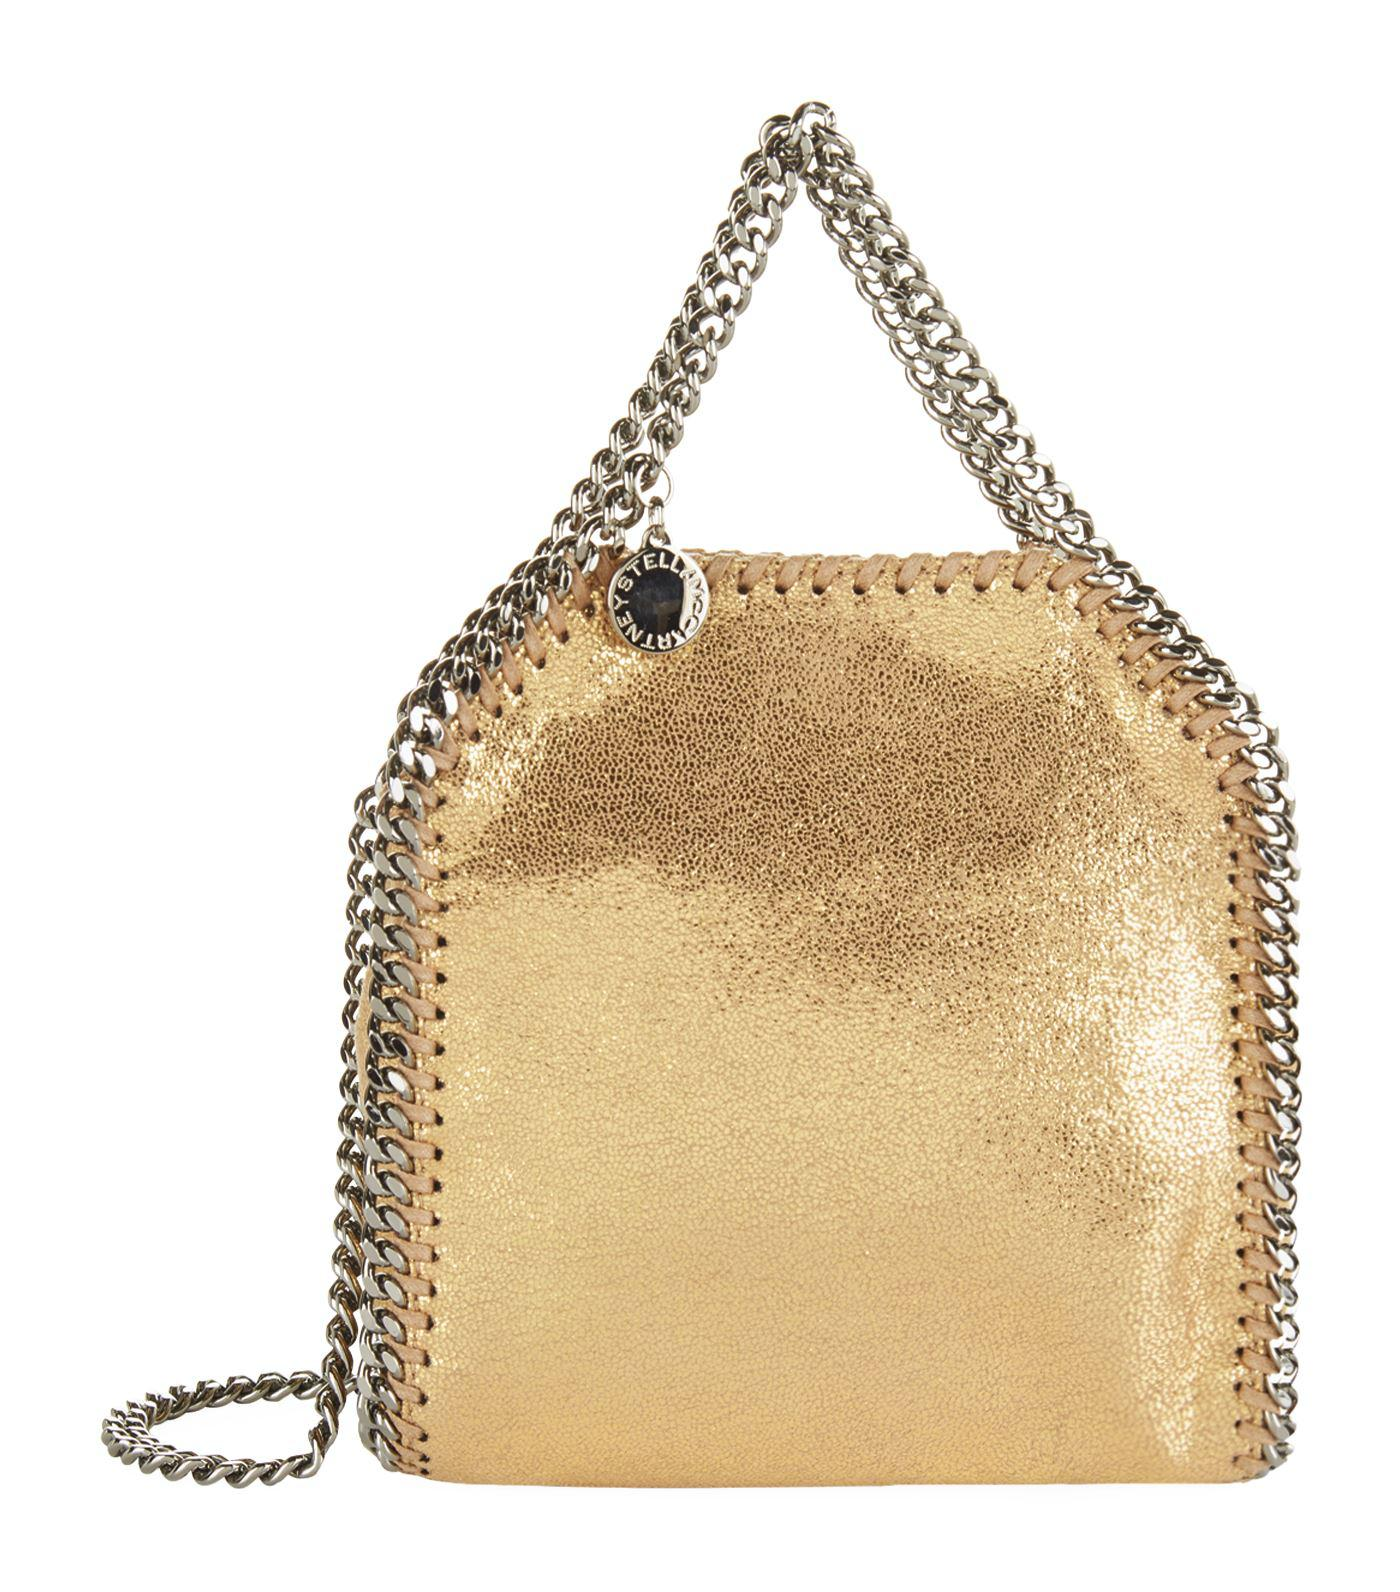 8221196af810 Lyst - Stella Mccartney Tiny Falabella Chamois Tote in Metallic